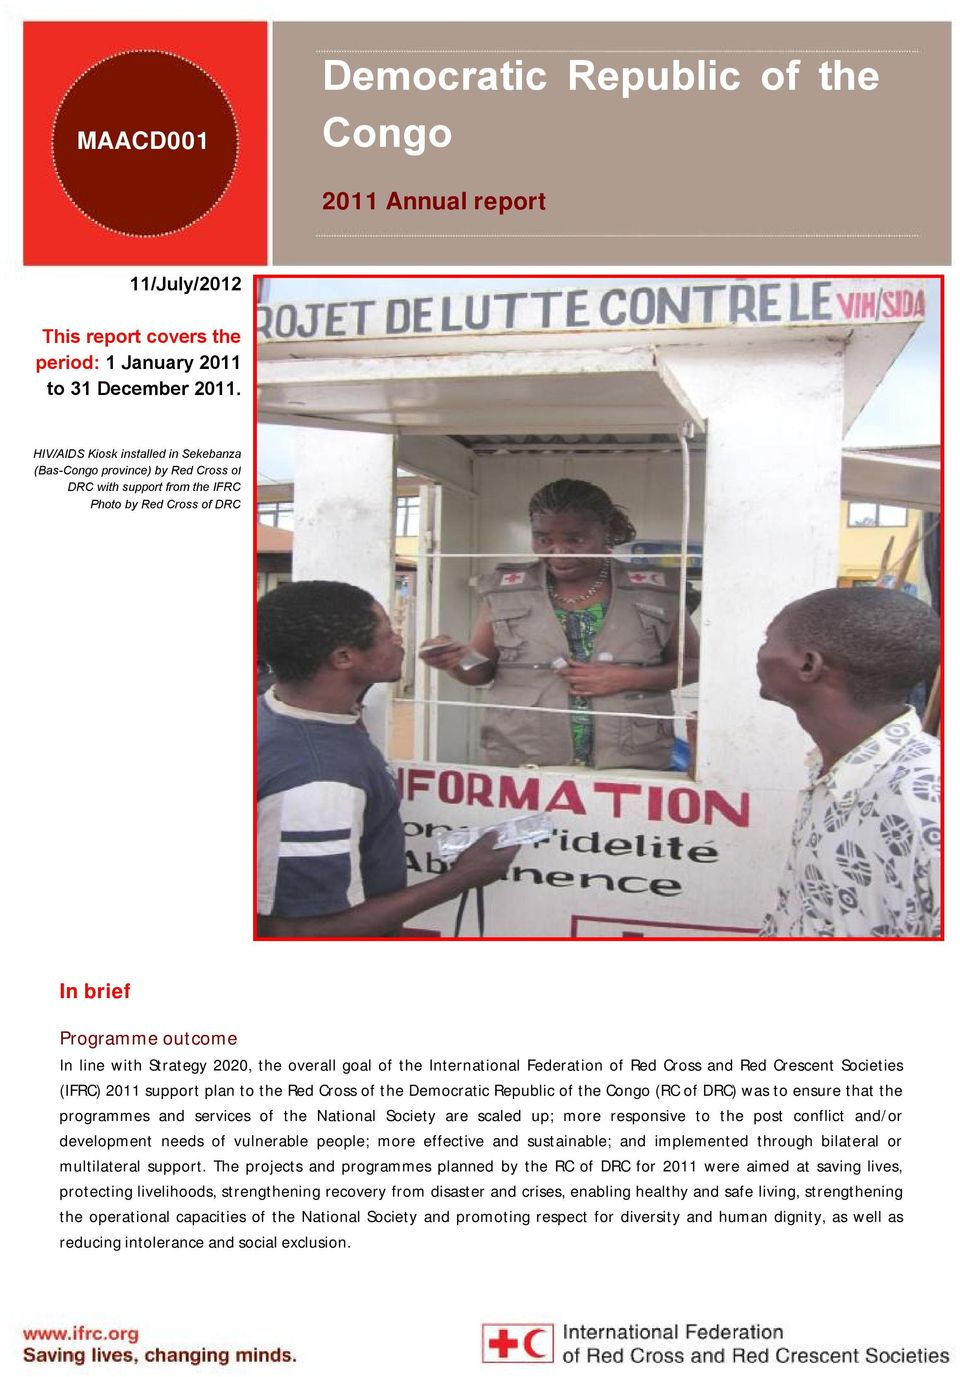 goal of the (IFRC) 2011 support plan to the Red Cross of the Democratic Republic of the Congo (RC of DRC) was to ensure that the programmes and services of the National Society are scaled up; more